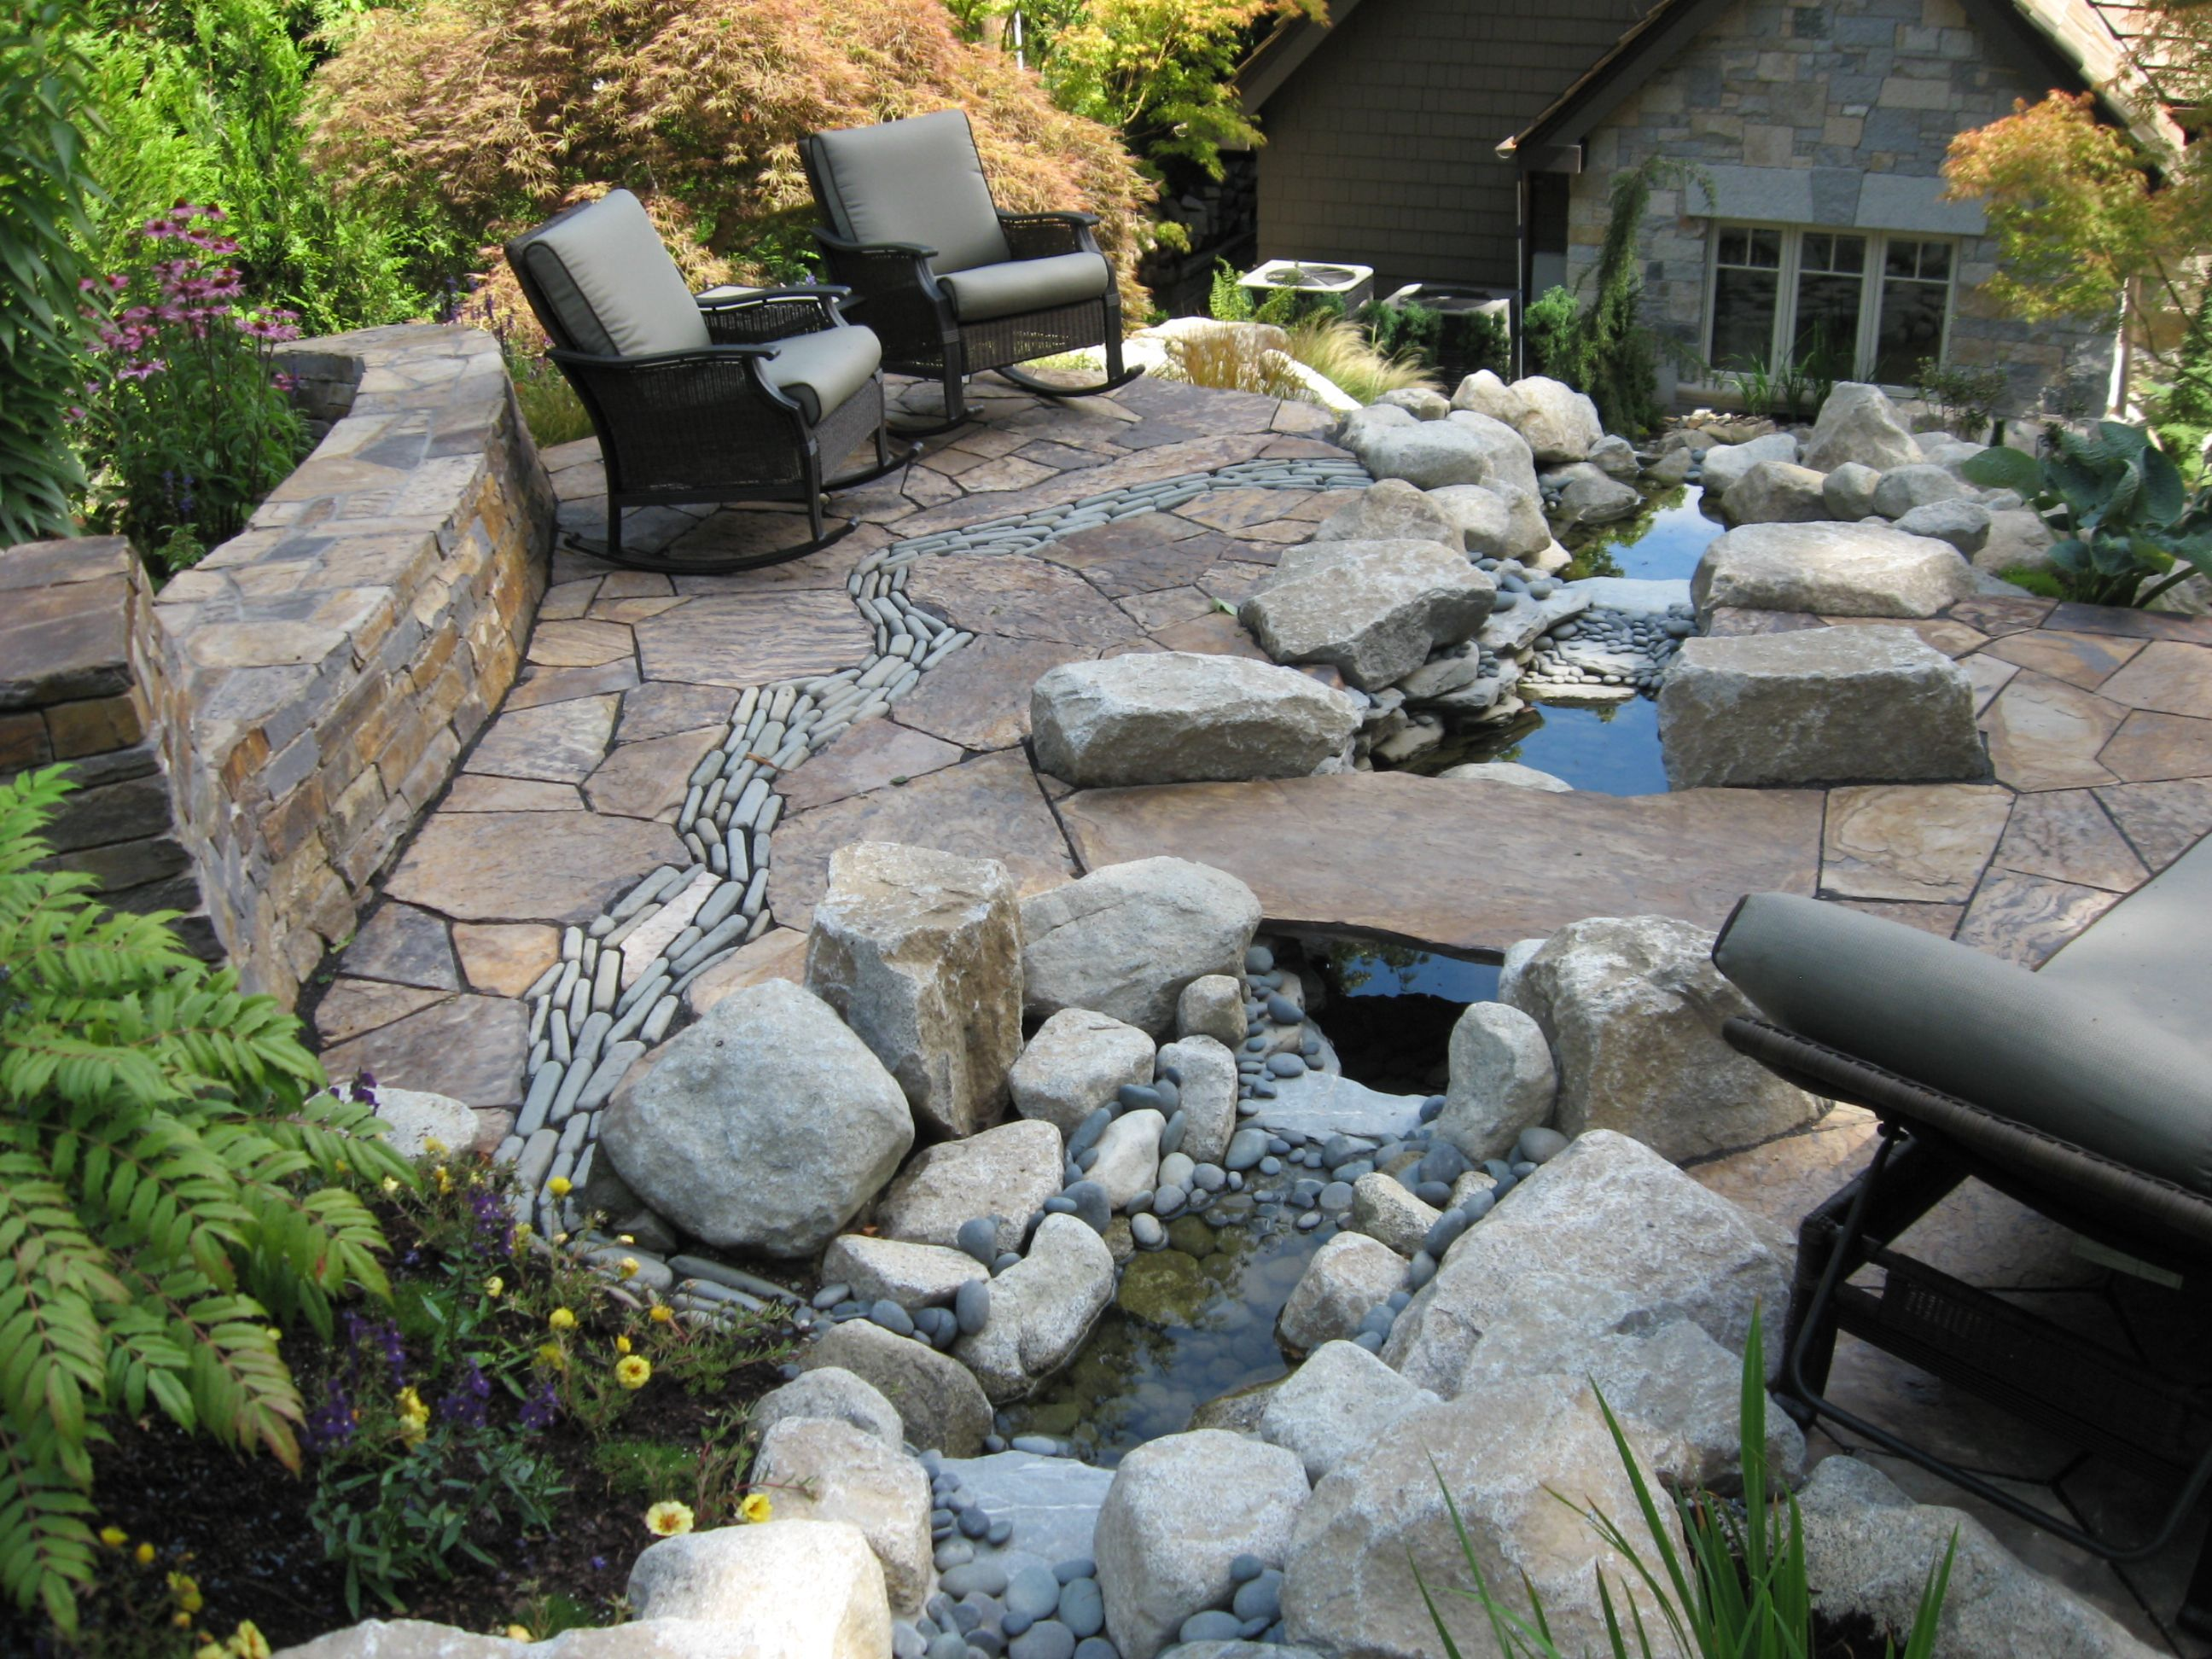 Patio Designs Ideas patio ideas with fire pit on a budget built with coarse materials patio ideas on Stone Patio Ideas Backyard 20 Creative Patiooutdoor Bar Ideas You Must Try At Your Backyard Youll